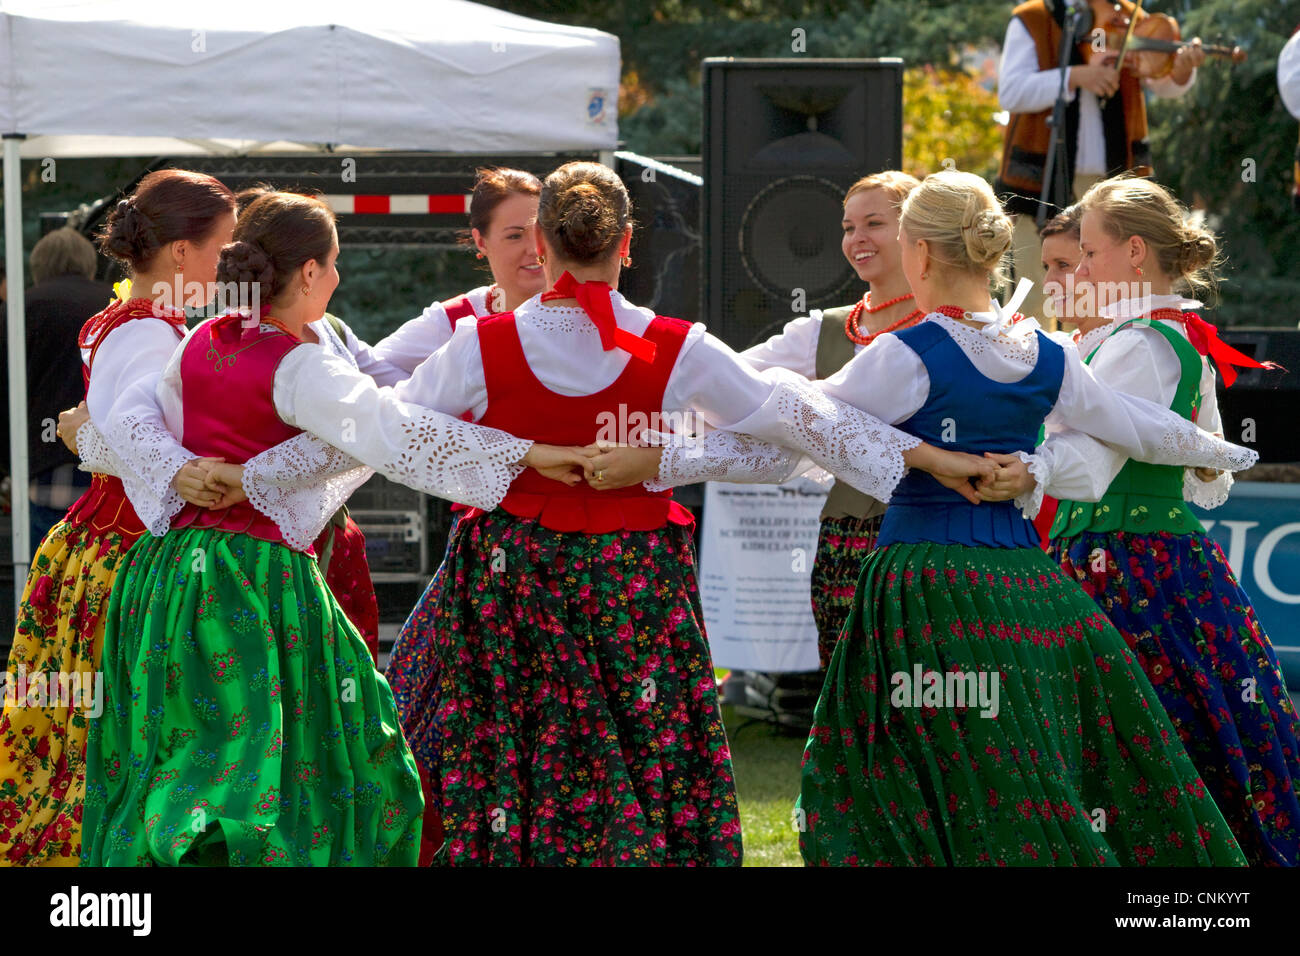 Polish Highlanders folk dancers perform at the Trailing of the Sheep Festival in Hailey, Idaho, USA. - Stock Image